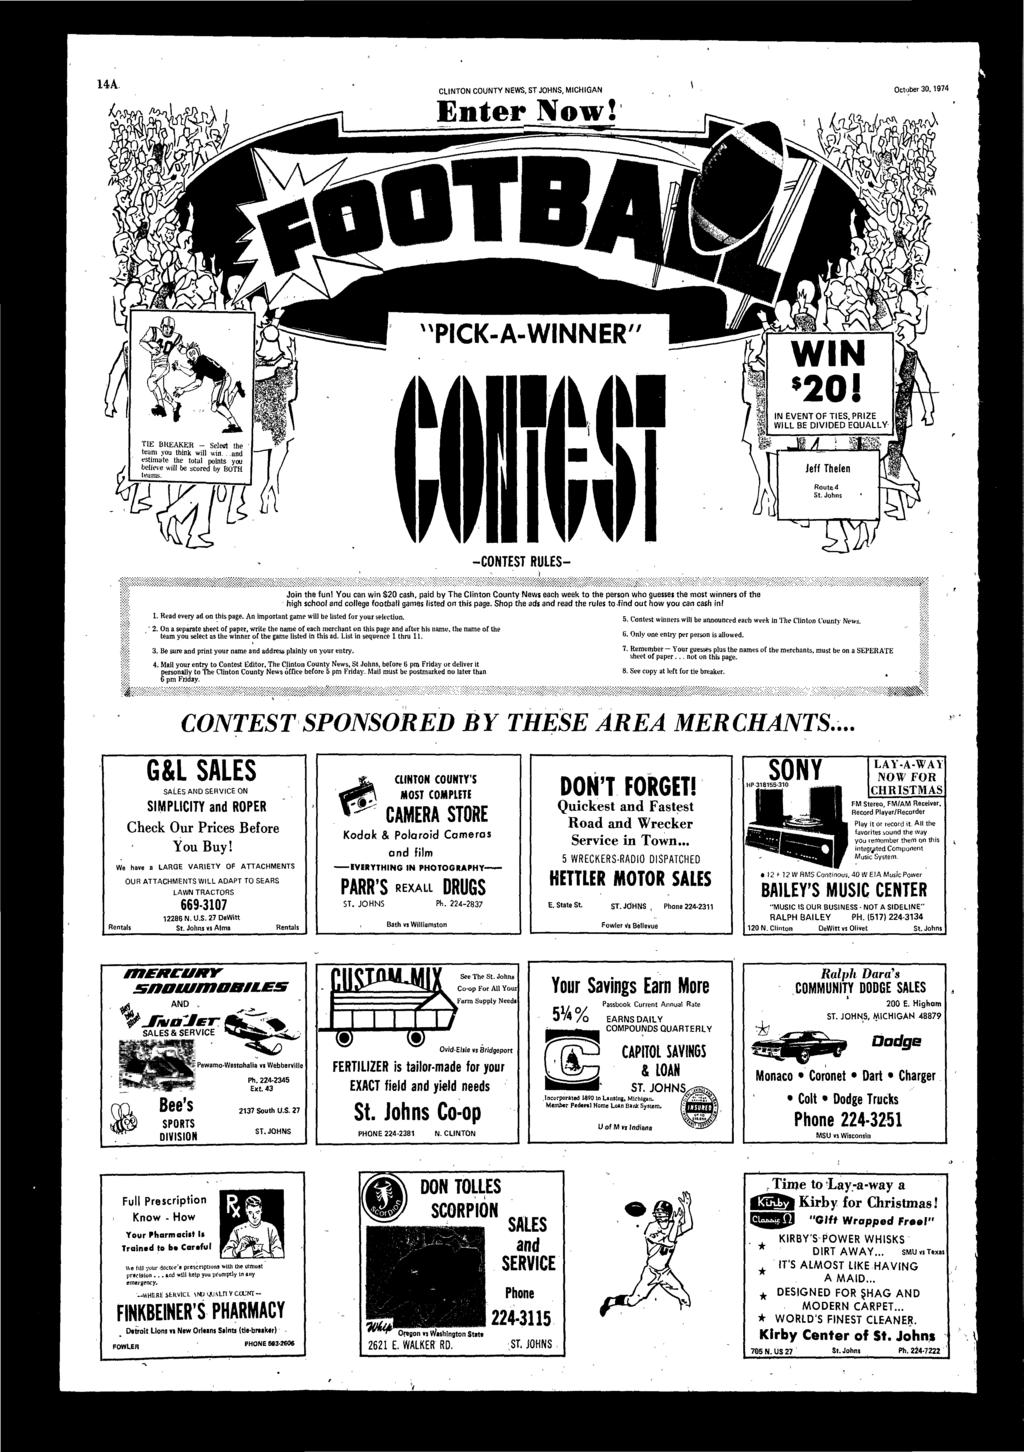 -CONTEST RULES- Join the fun! You cn win $20 csh, pid by The Clinton County News ech week to the person who guesses the most winners of the high school college footbll gmes listed on this pge.